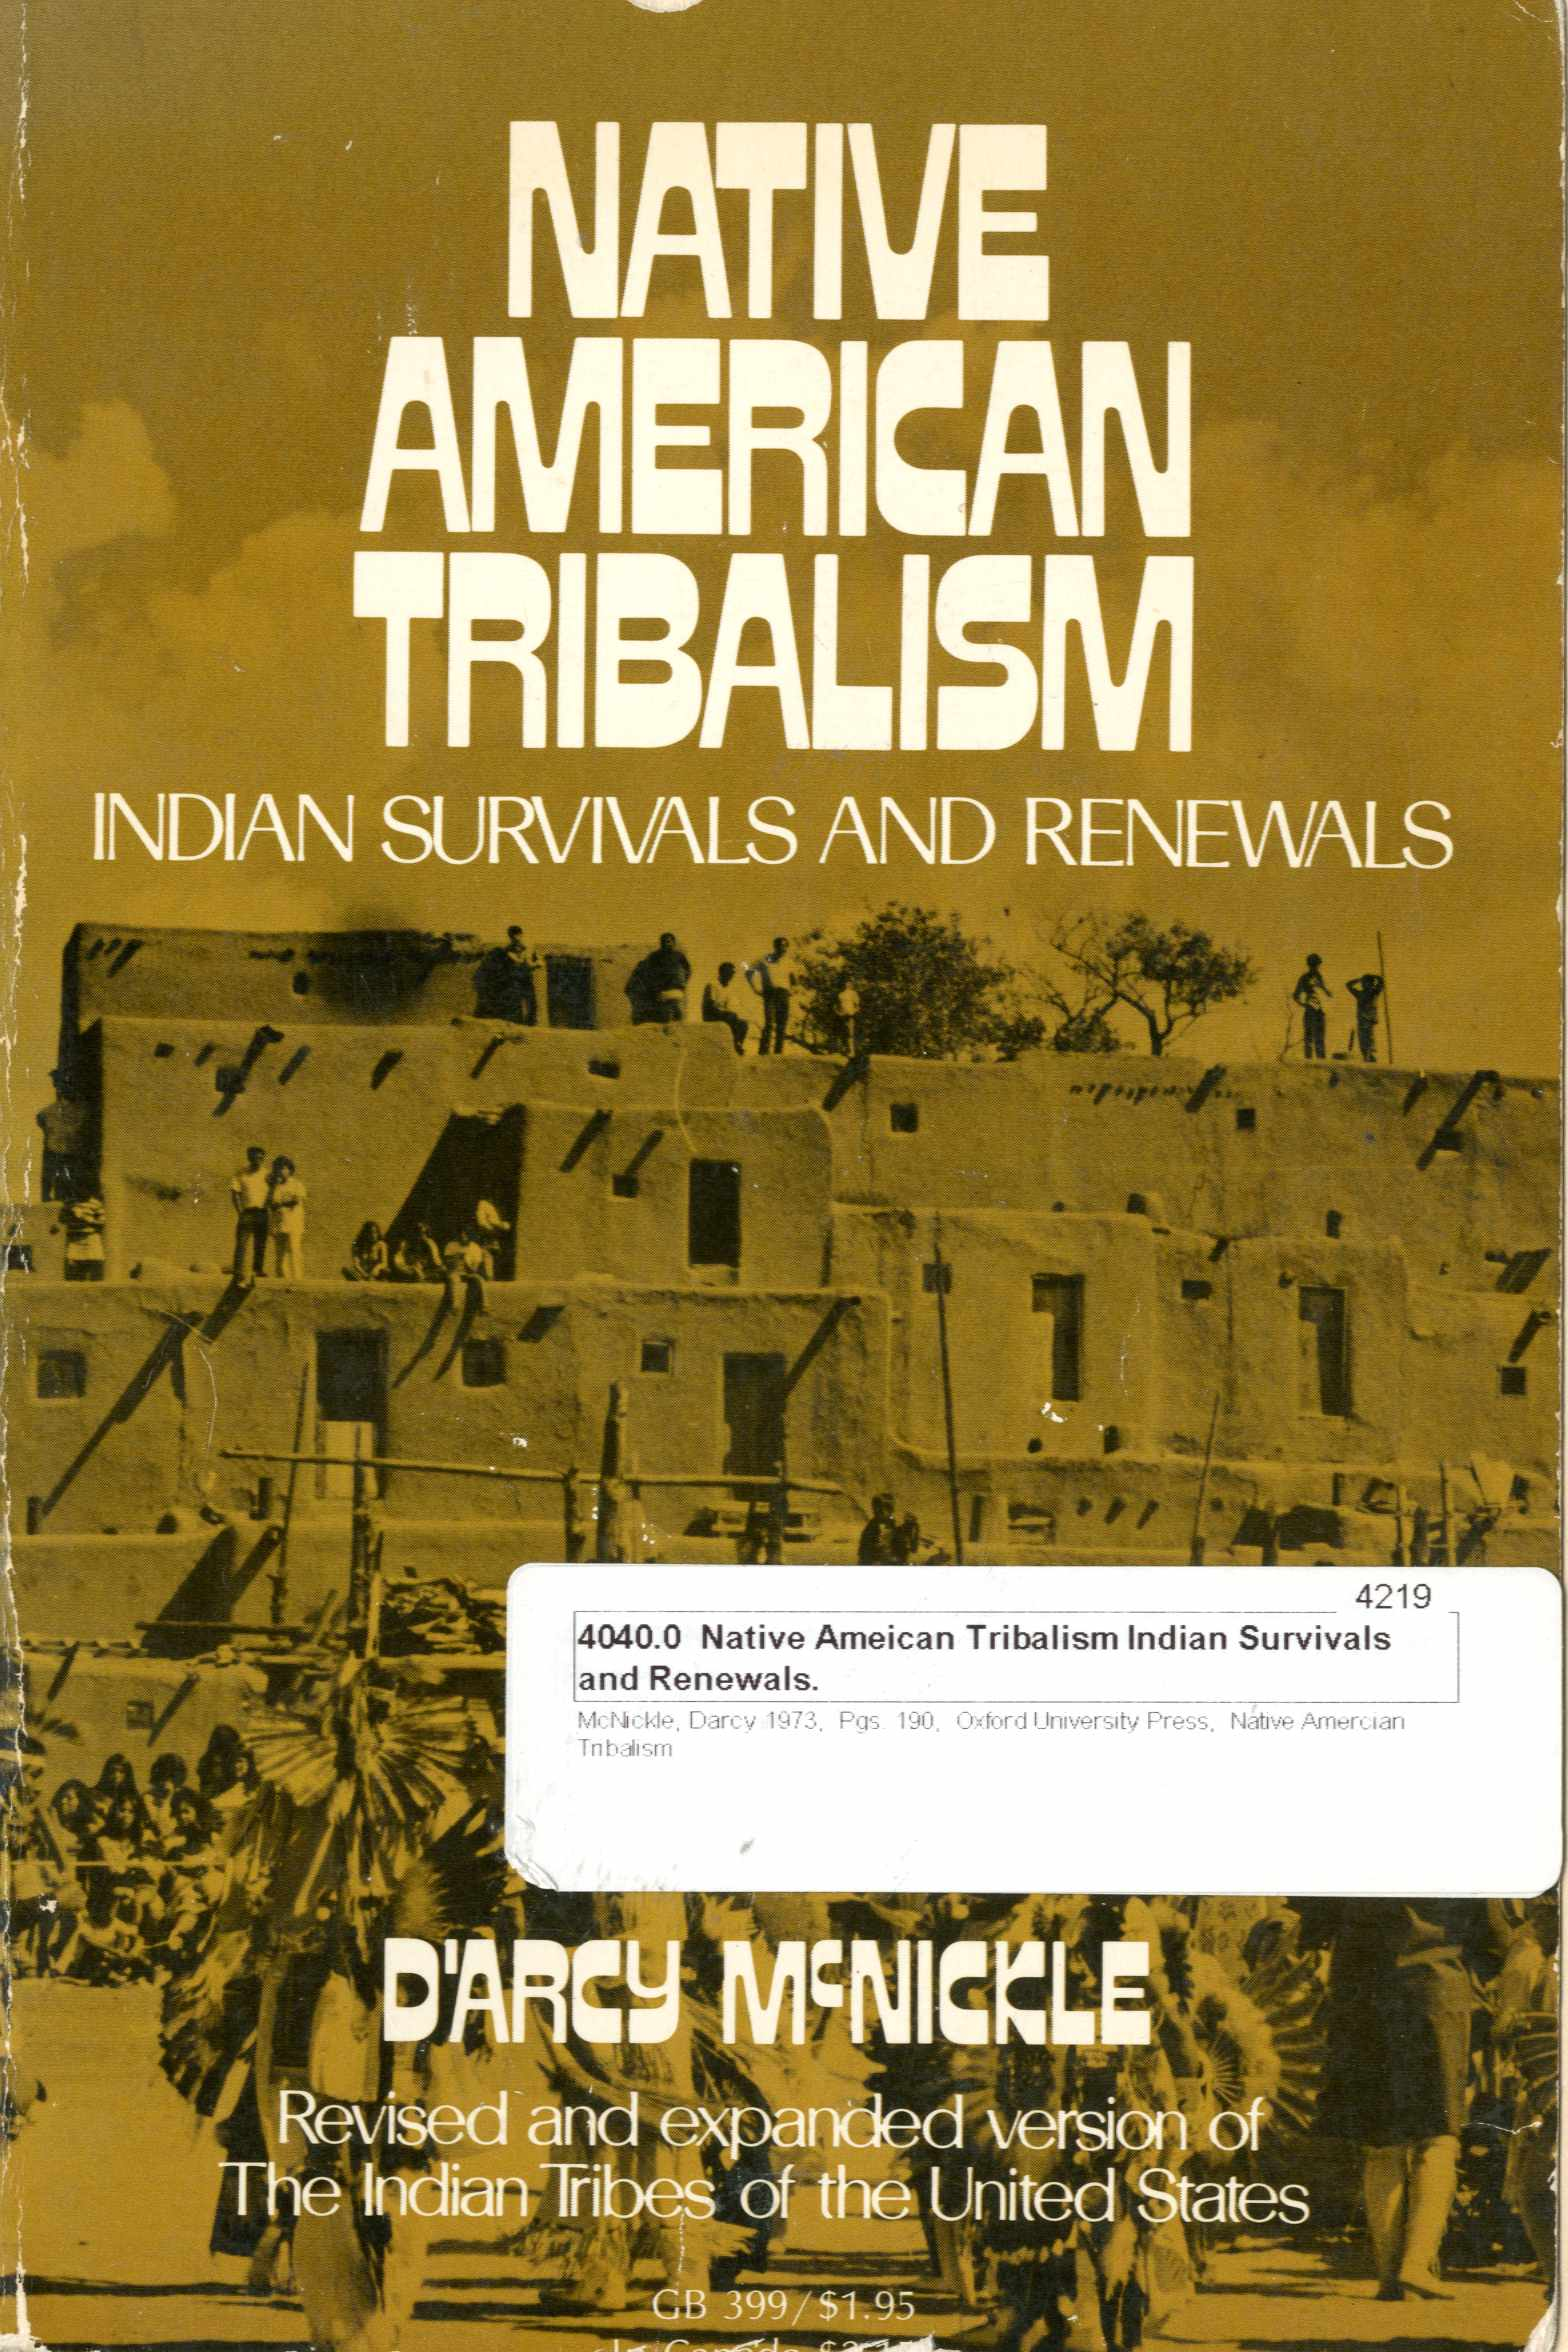 Native American Tribalism: Indian Survival and Renewals Image